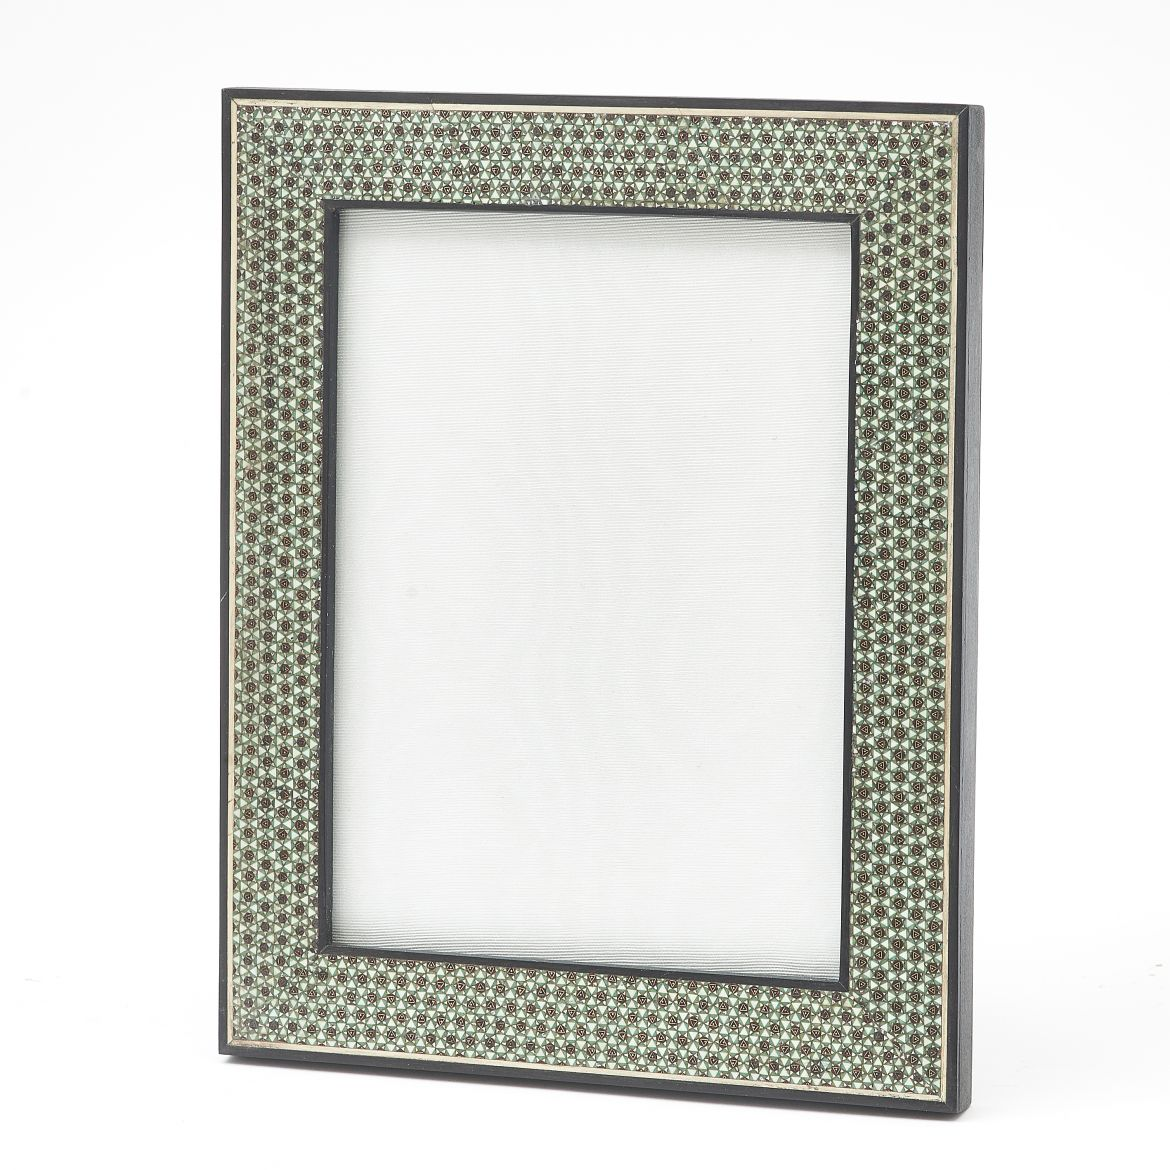 Green & White Sadeli Frame